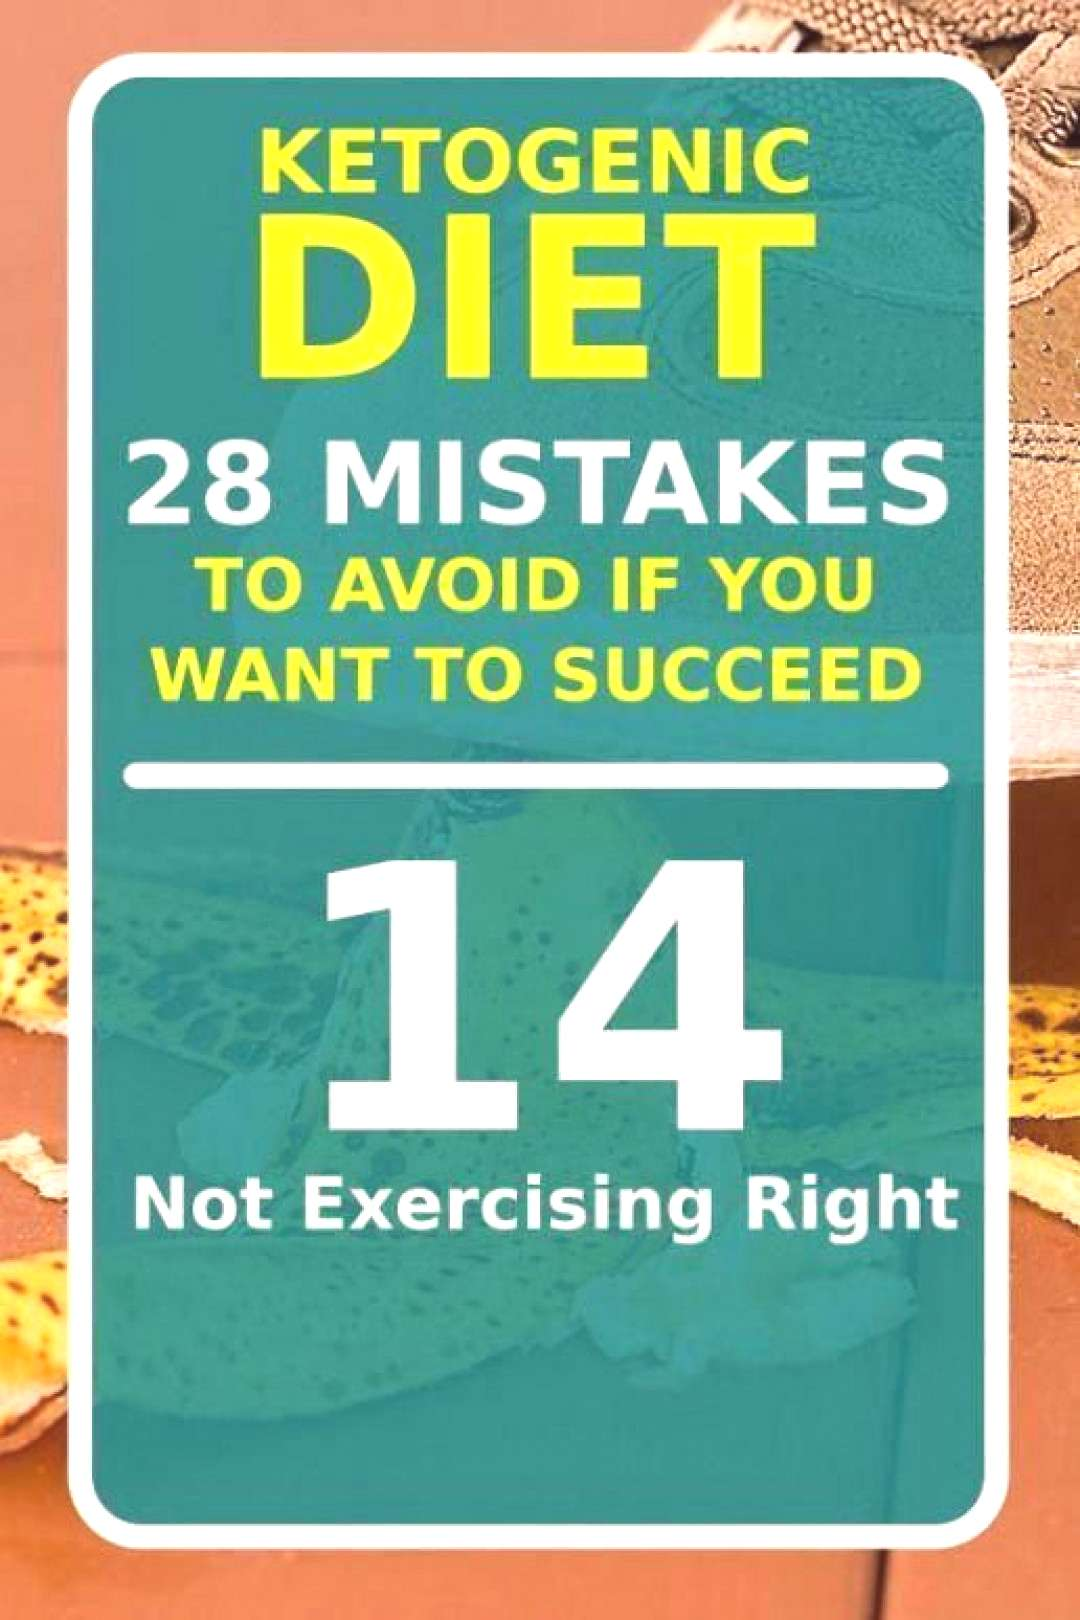 The Ketogenic Diet is a very effective way to lose weight and become healthier however due to sever